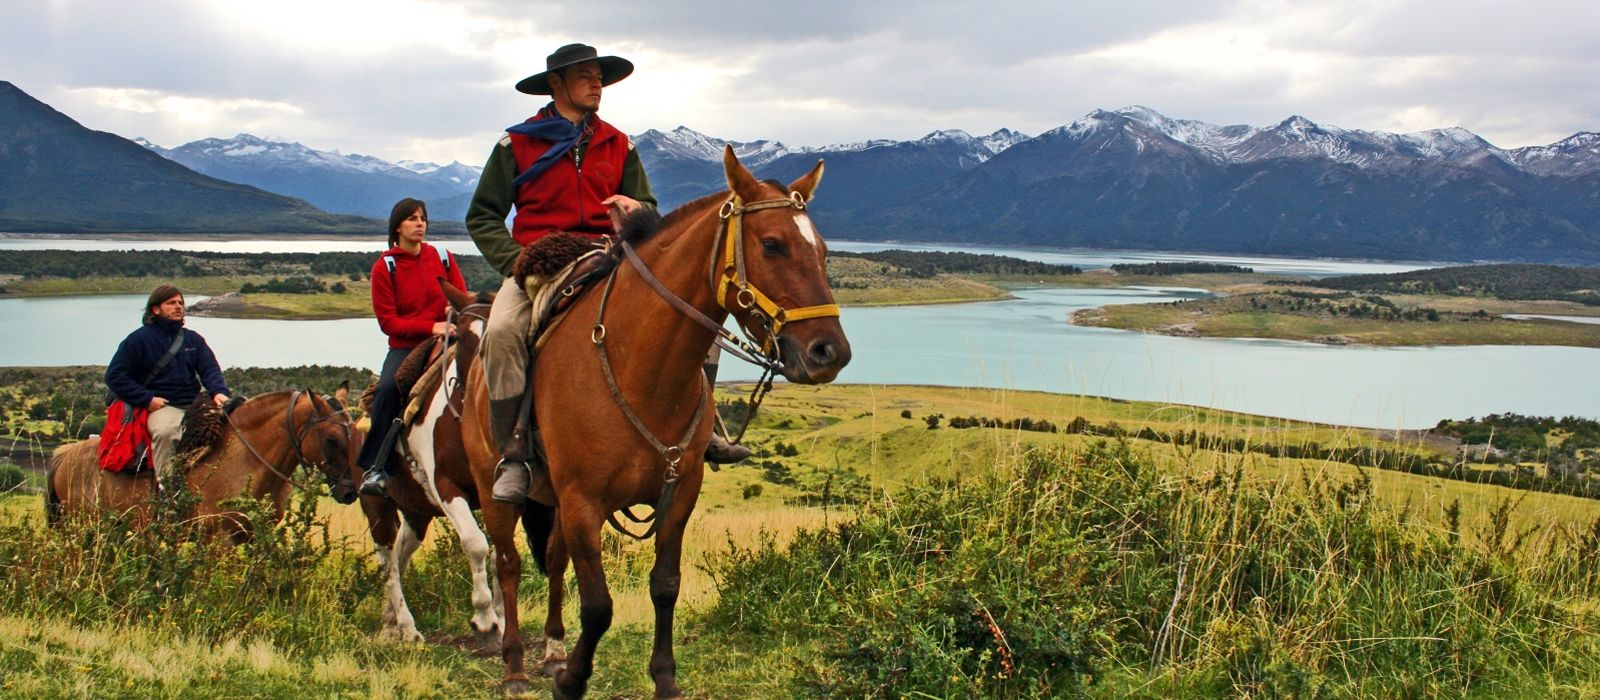 Argentina: Waterfalls, Whales and Gauchos Tour Trip 1